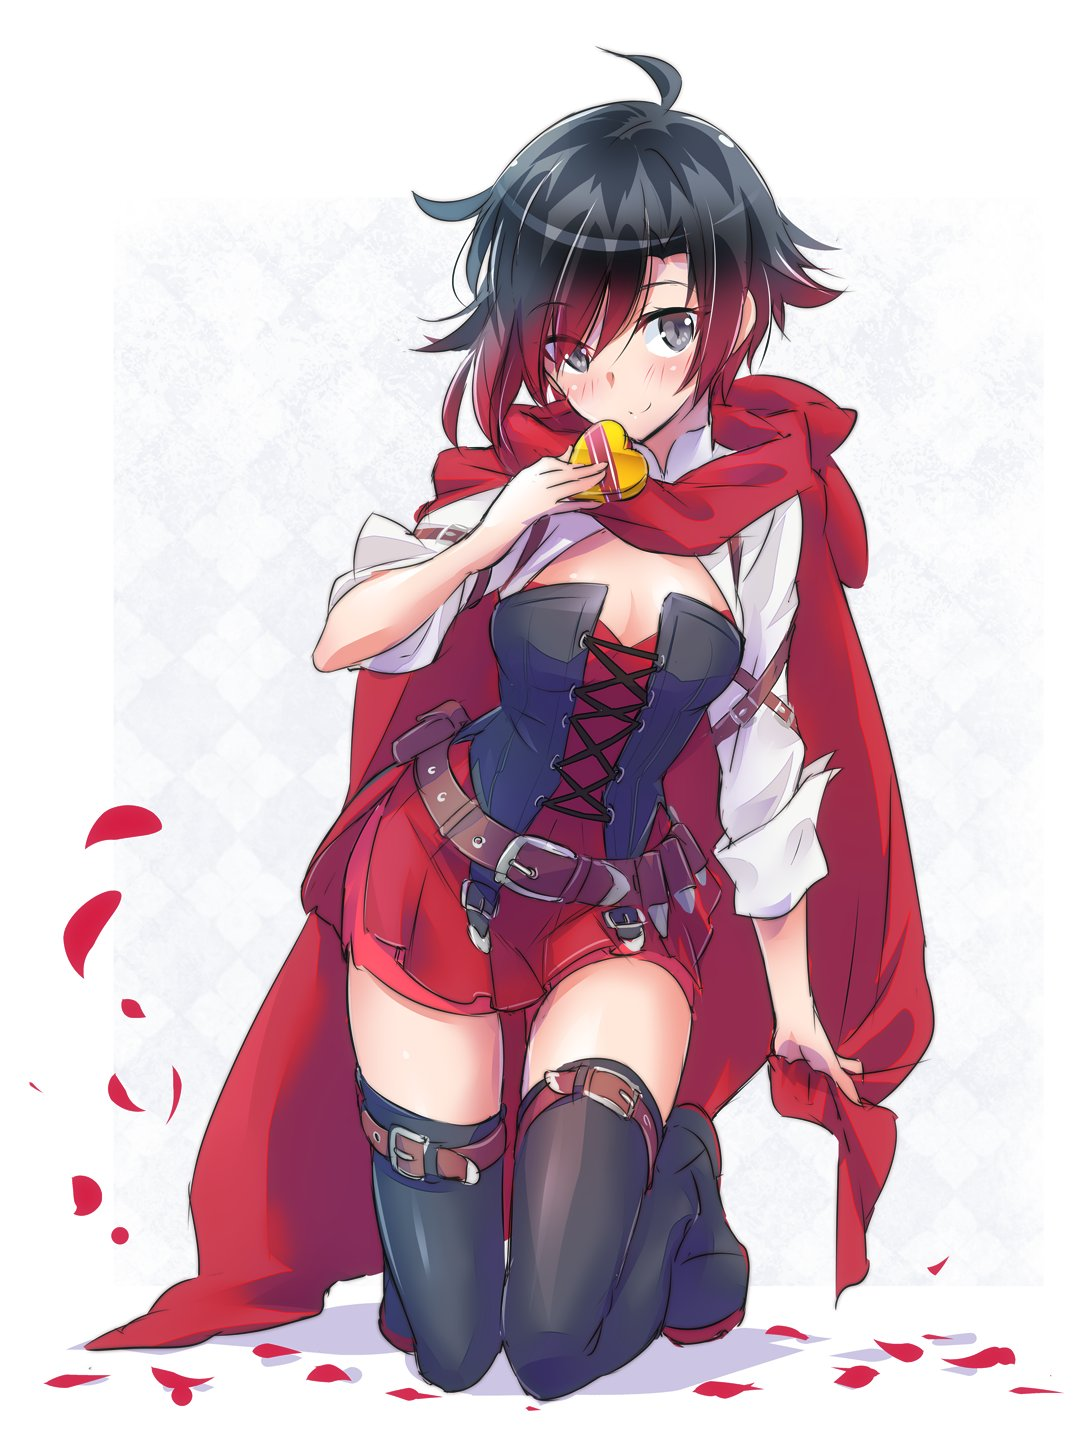 1girl bandolier belt black_hair blouse boots box bullet cape cloak corset dress flower gradient_hair grey_eyes heart heart-shaped_box highres hood hooded_cloak iesupa kneeling multicolored_hair petals red_cape red_dress redhead rose rose_petals ruby_rose rwby short_hair solo thigh-highs thigh_boots two-tone_hair white_blouse